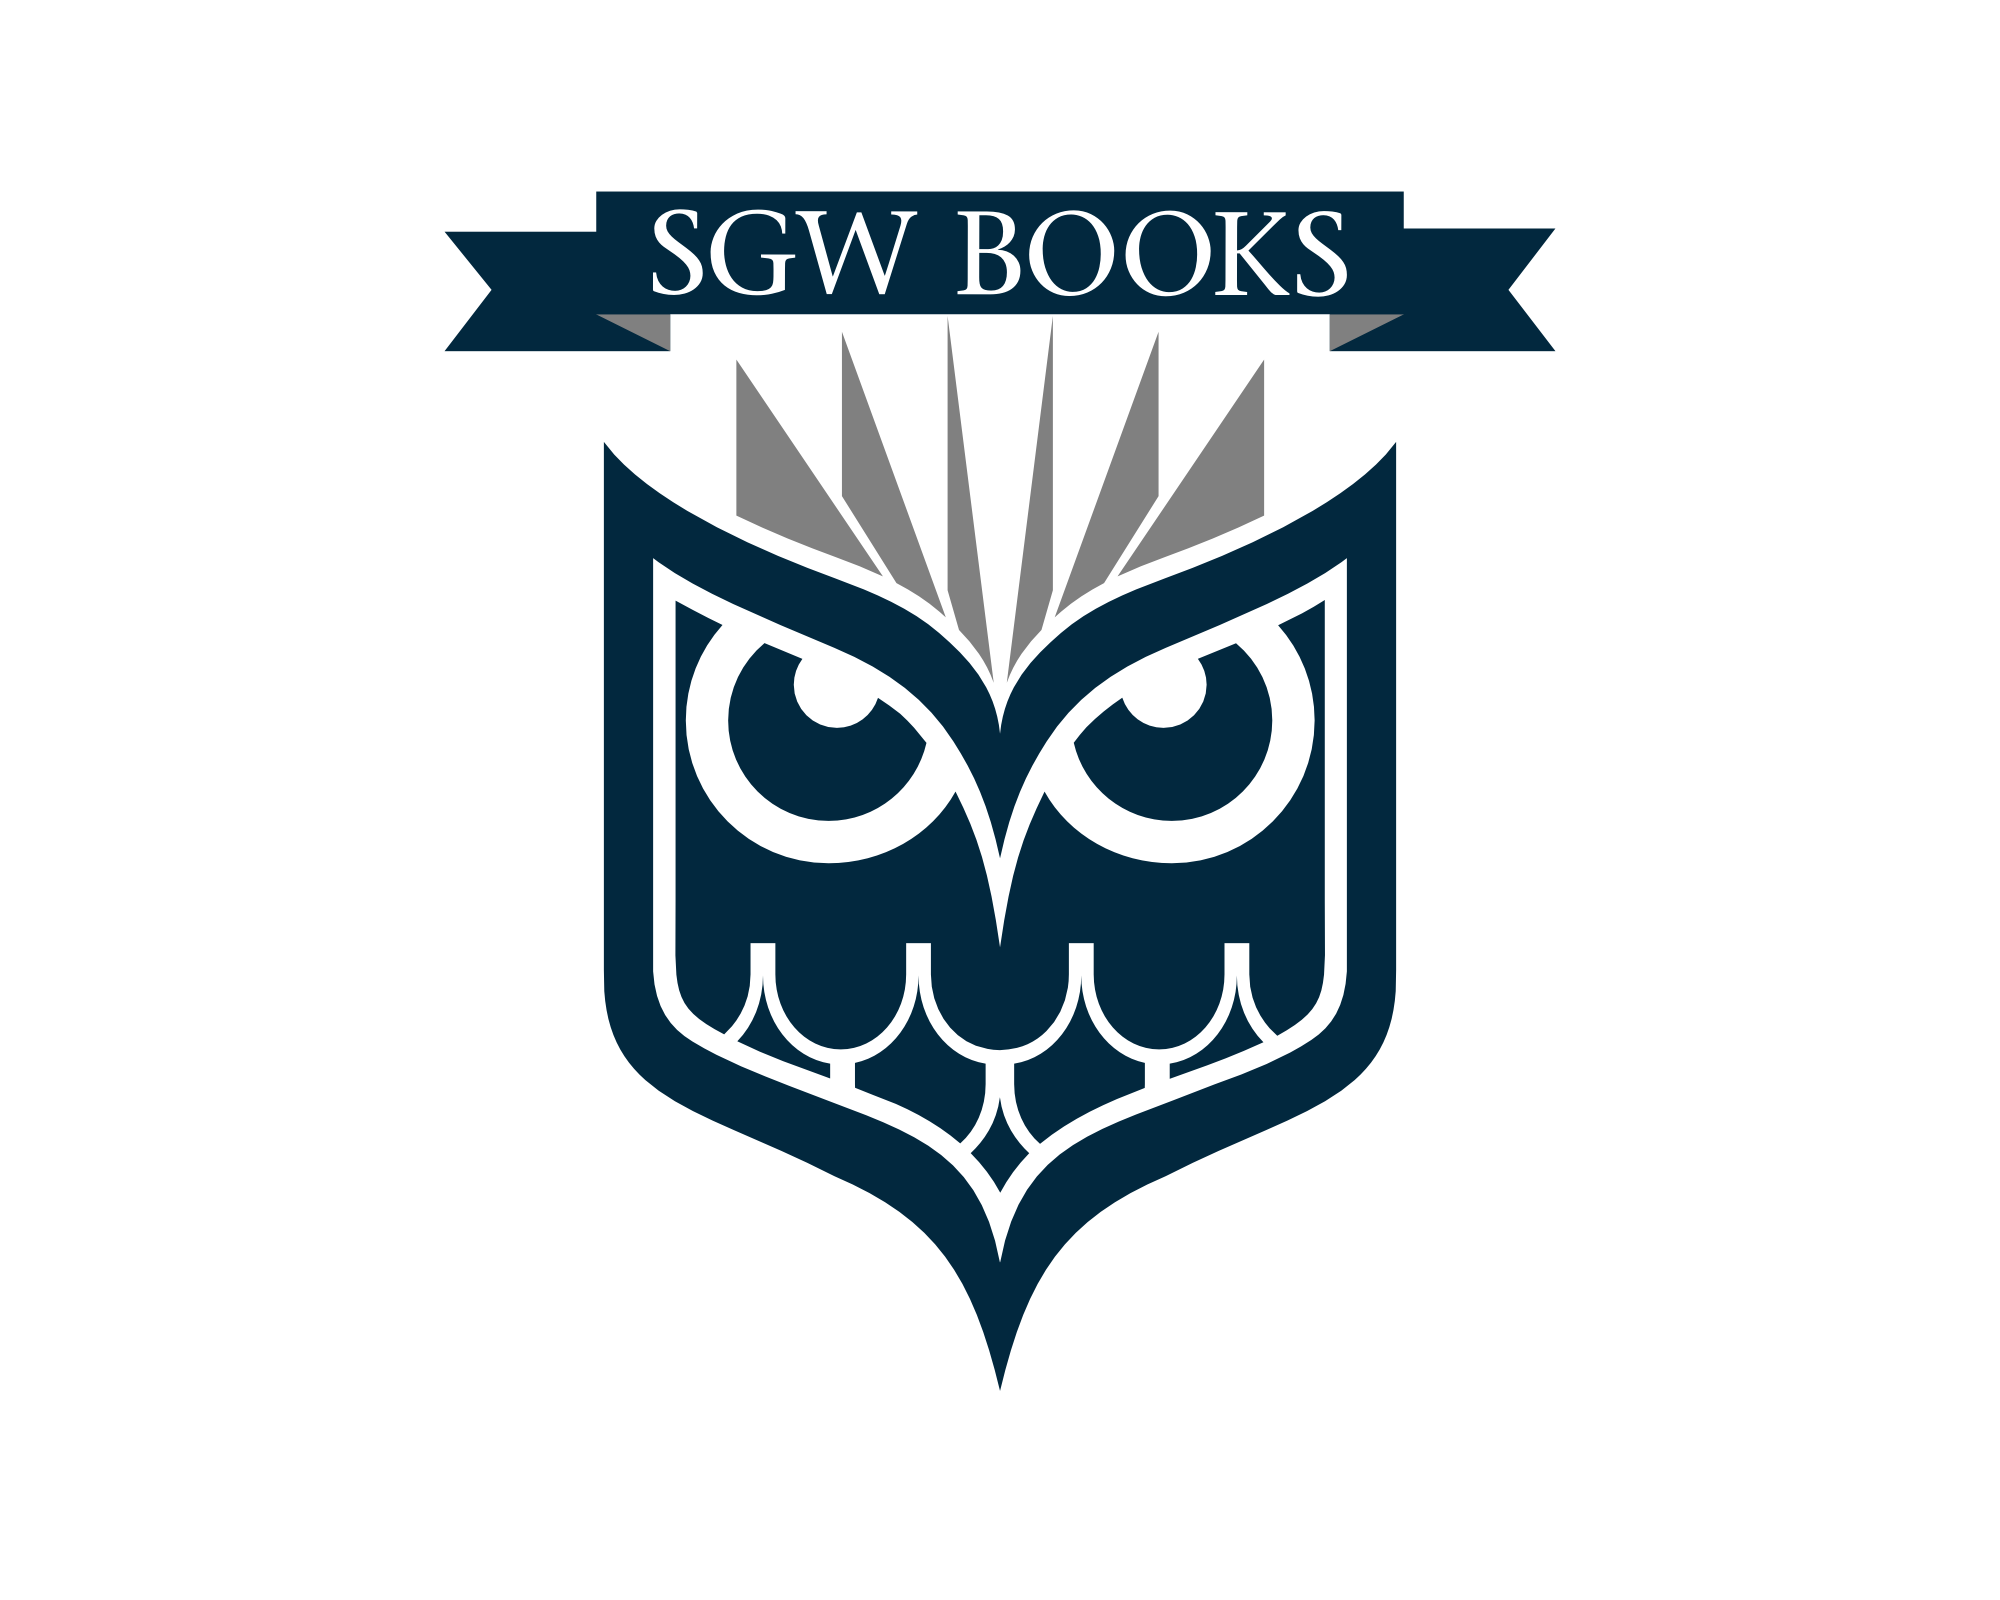 Logo Design by explogos - Entry No. 78 in the Logo Design Contest SGW Books Logo Design.